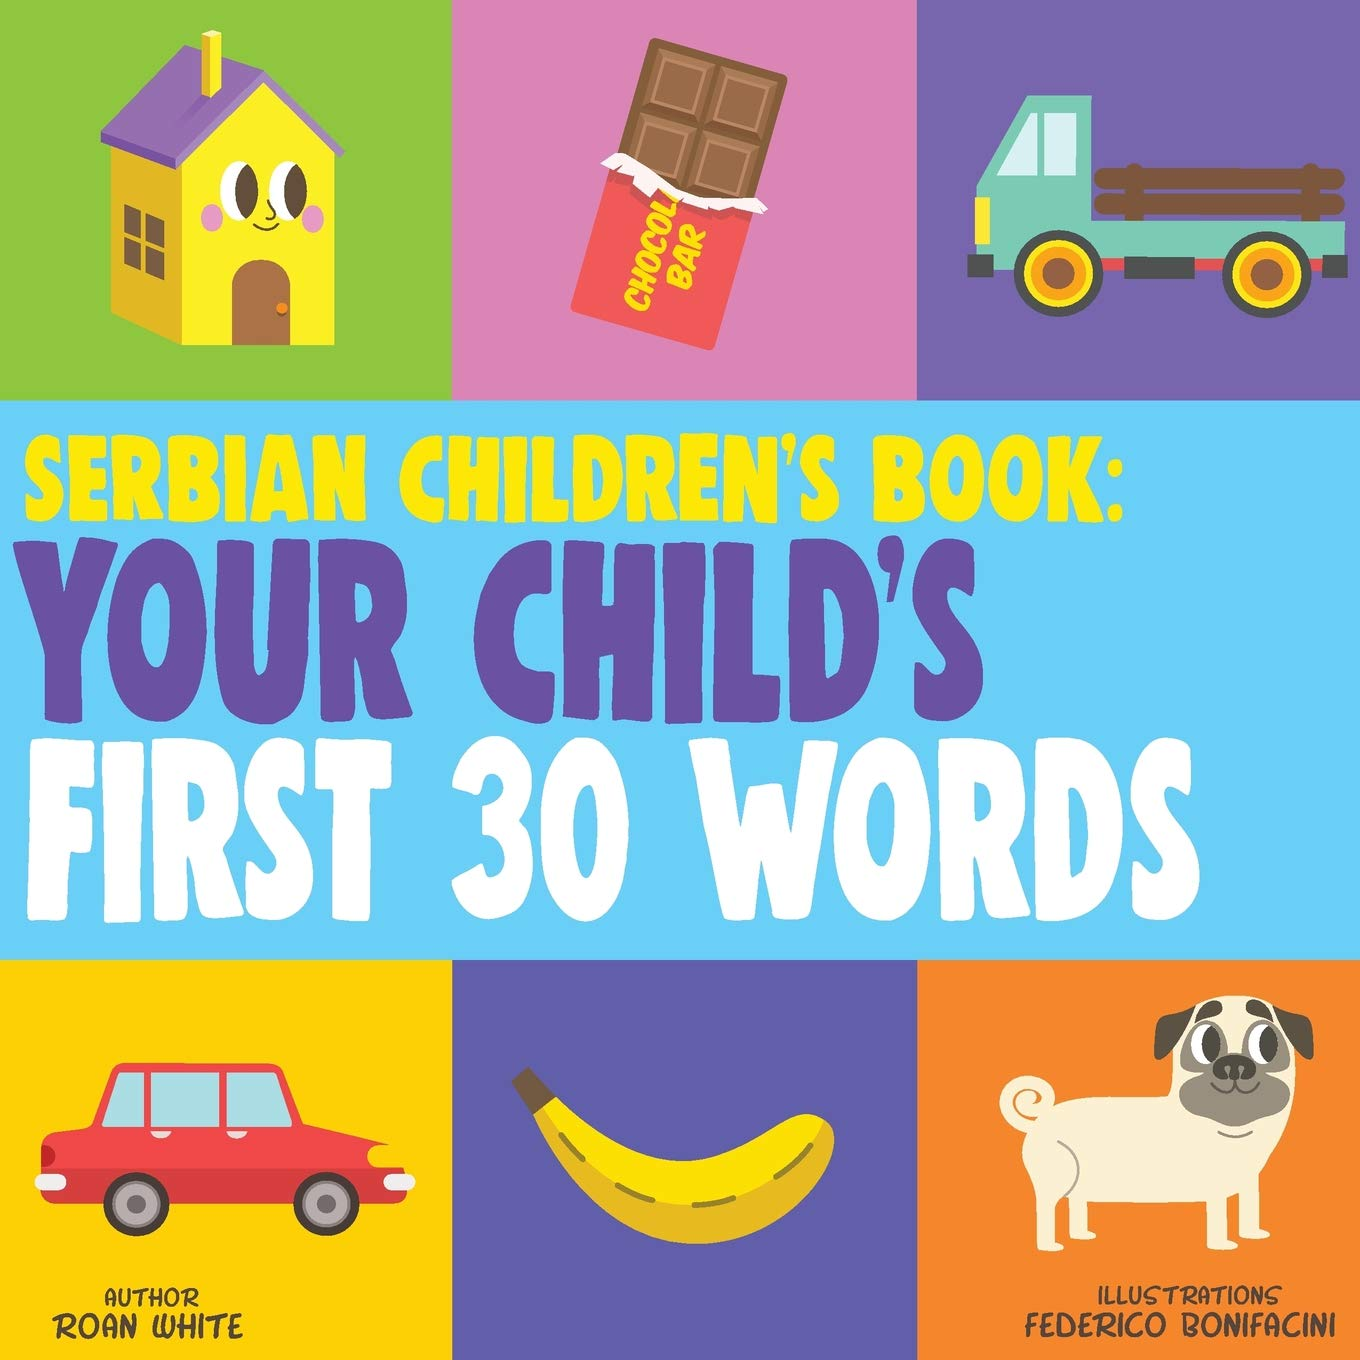 Serbian Childrens Book Your Childs First 30 Words